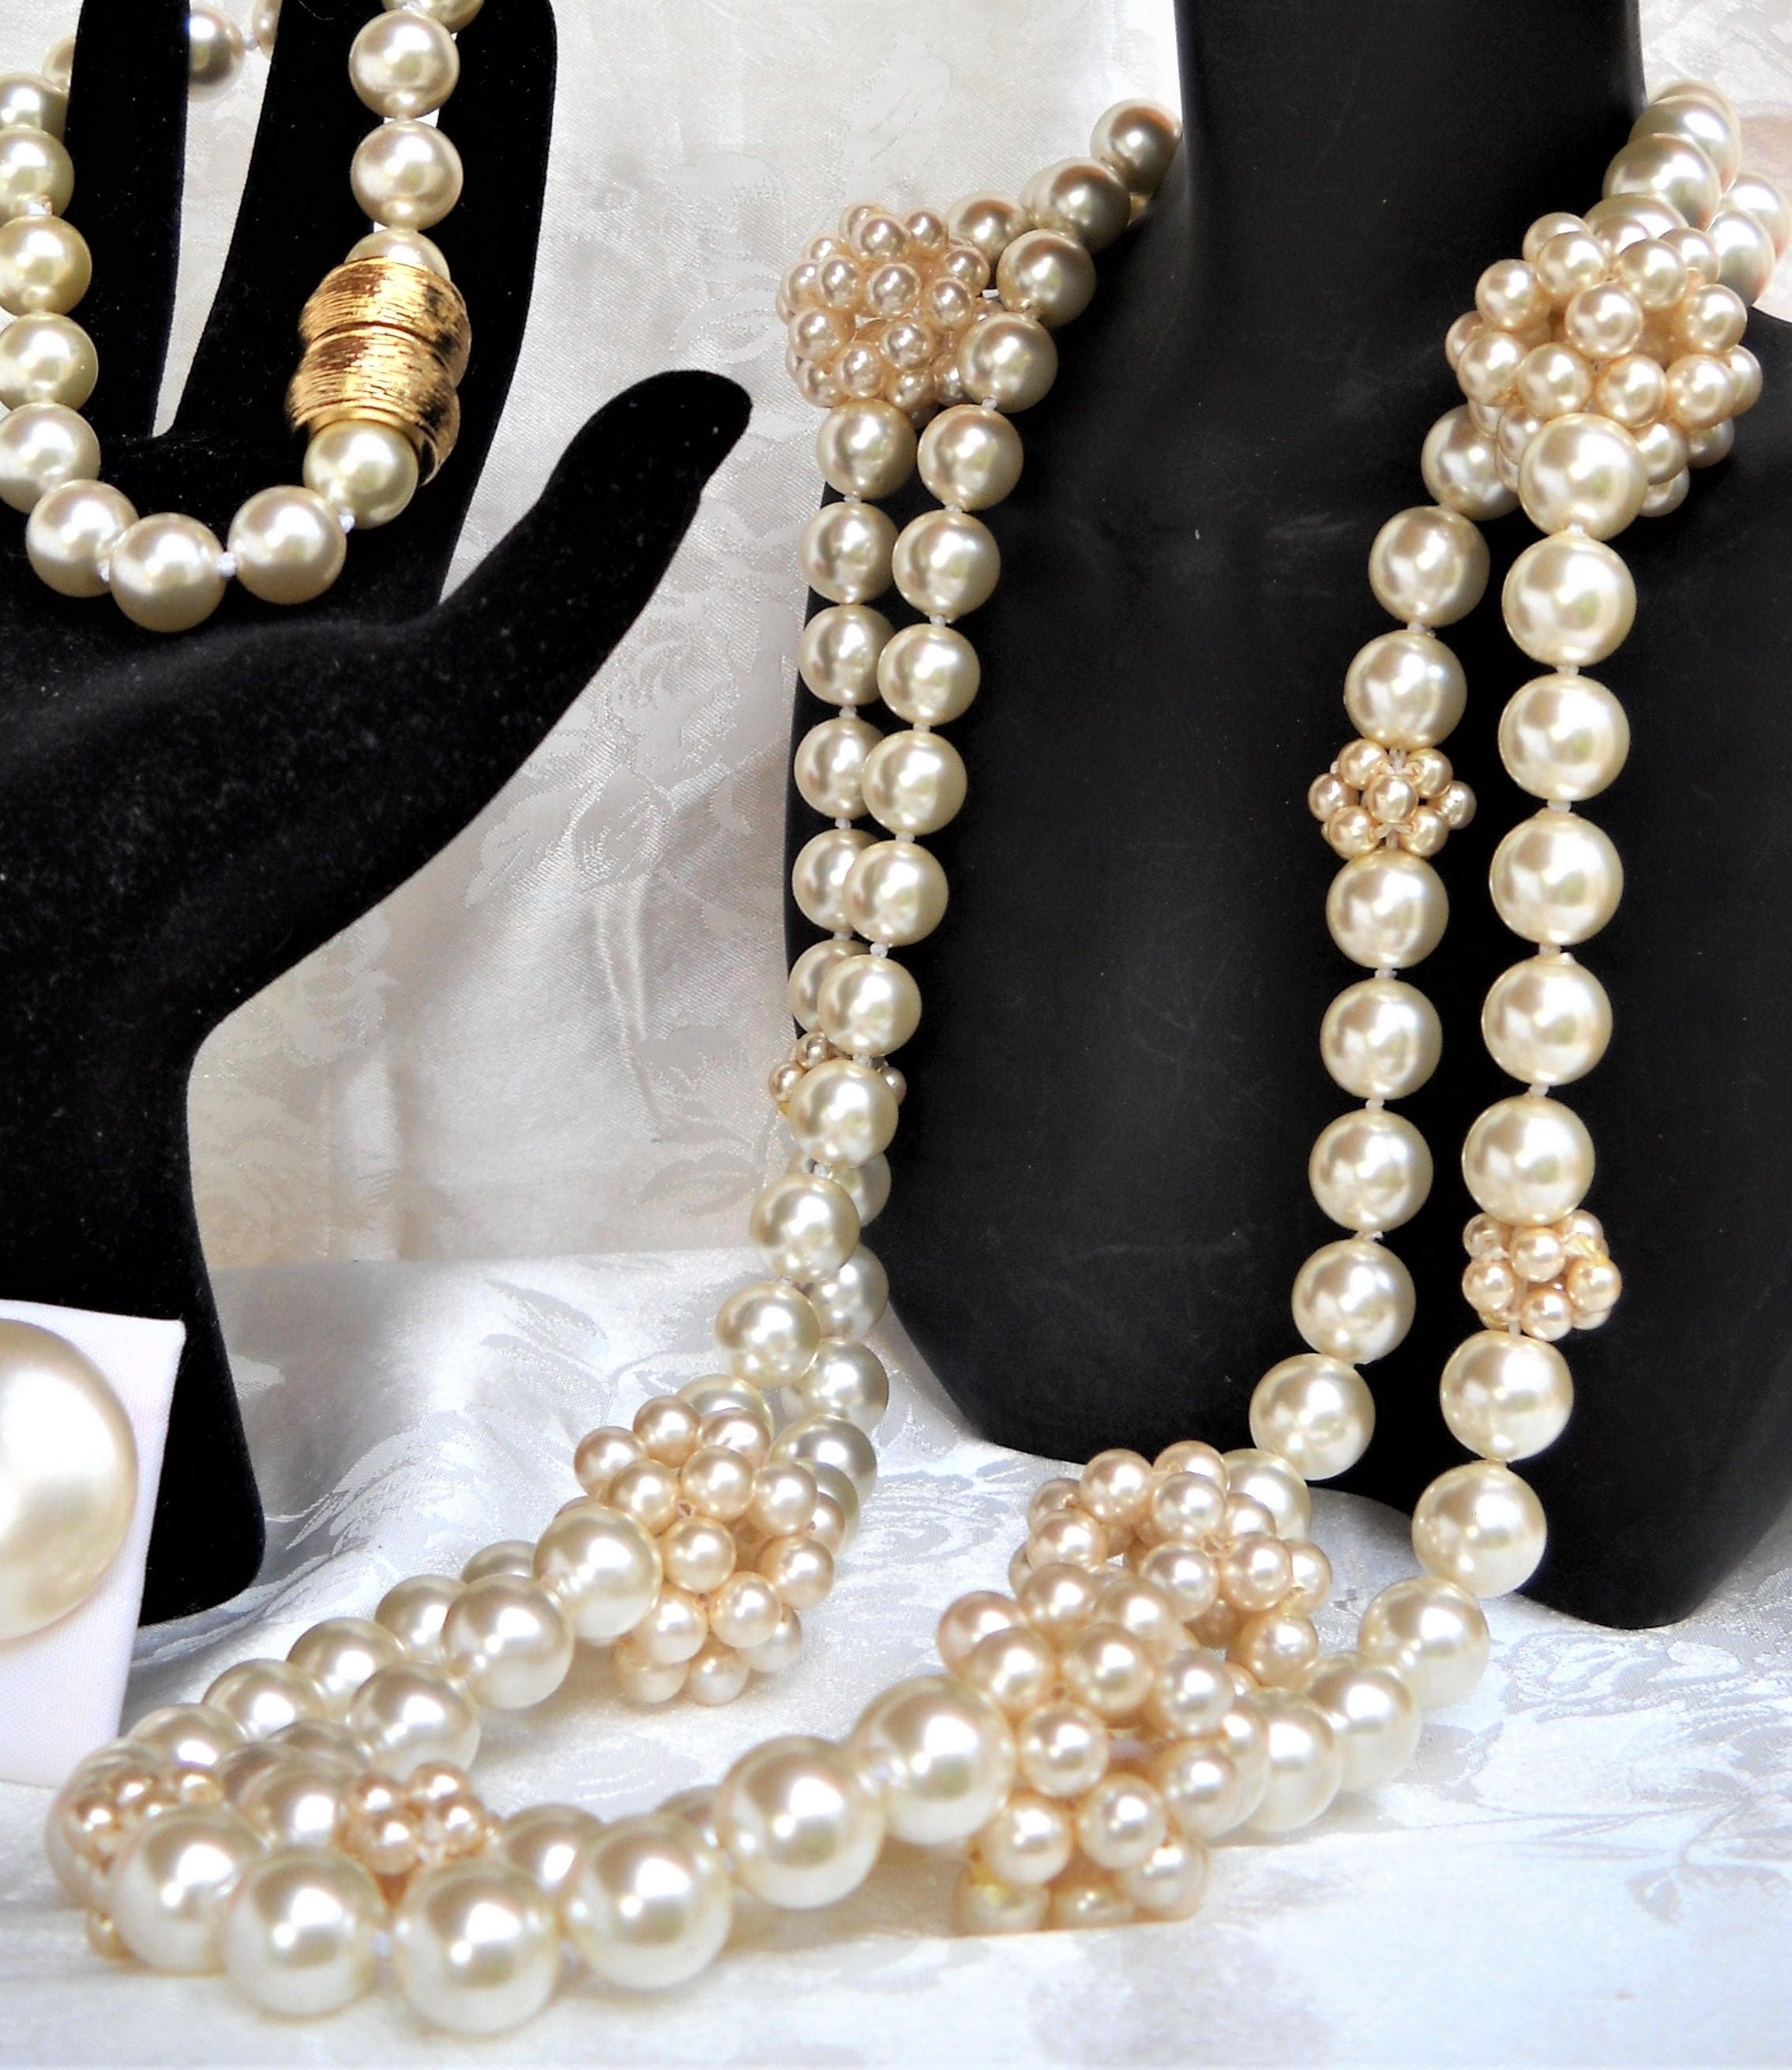 Mallorca Pearl Necklace: Long Majorca/Mallorca Pearl Necklace 10mm White Majorca Pearls